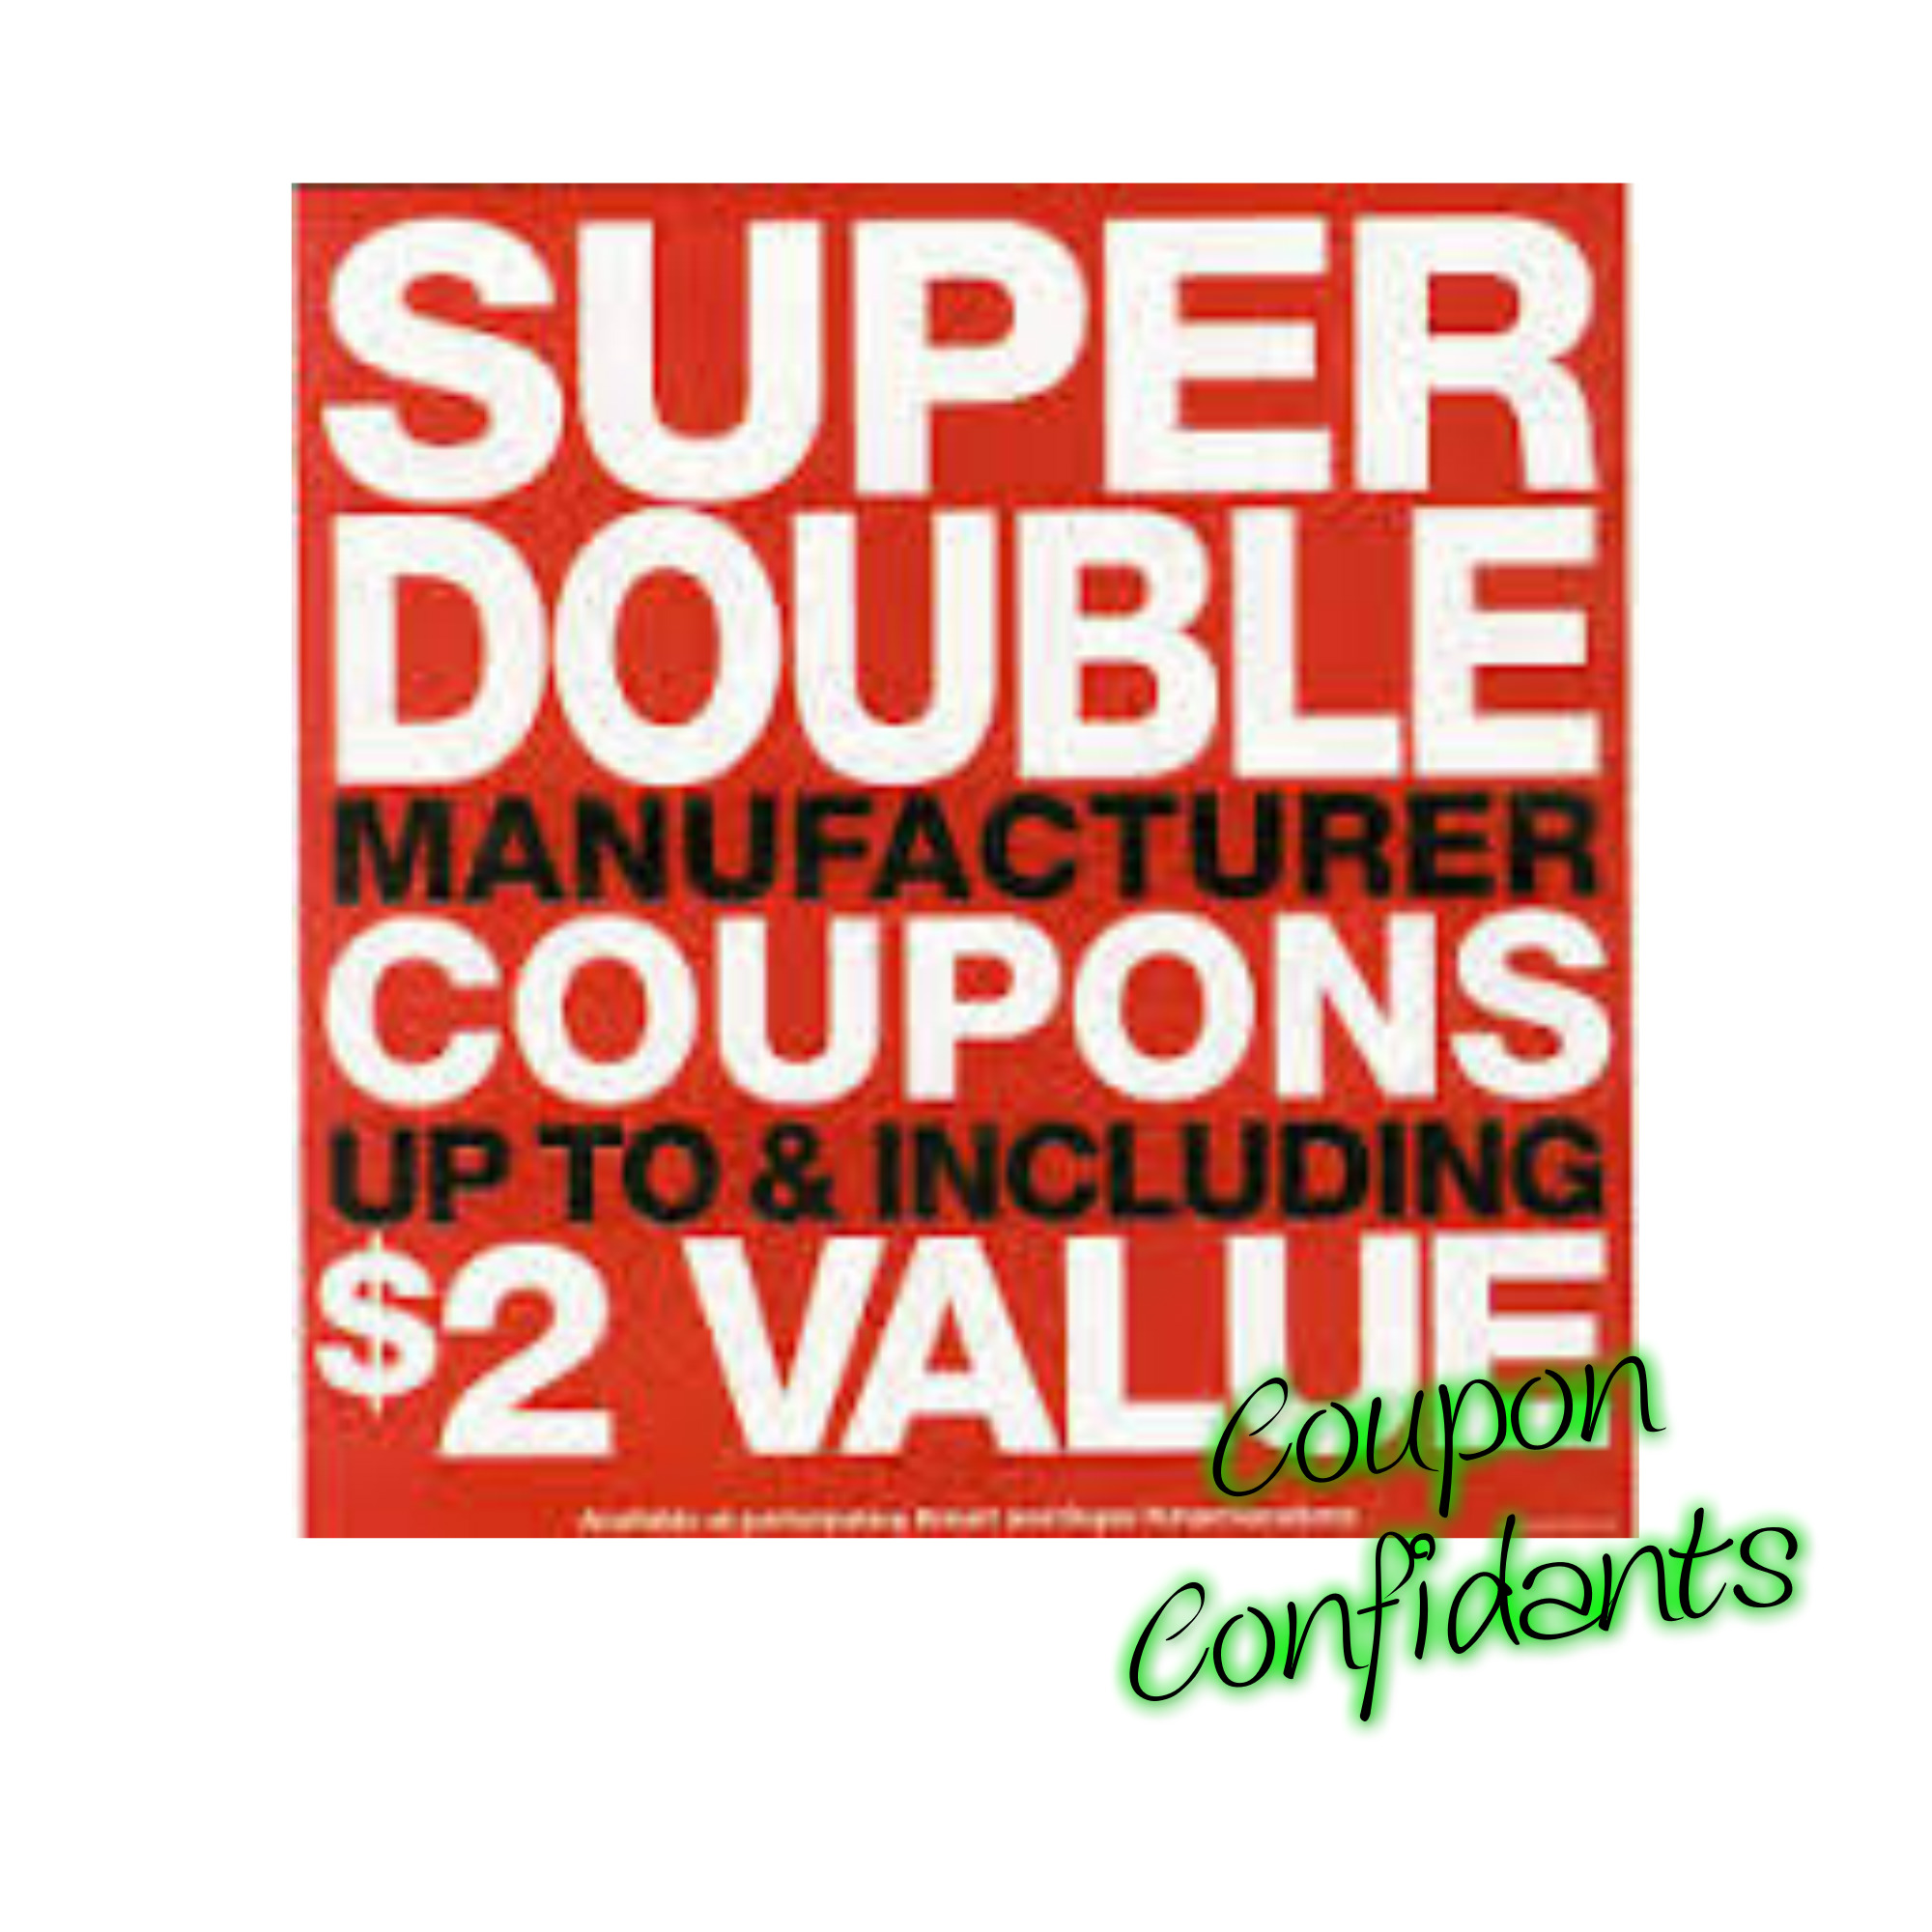 Kmart Coupons K Mart Doubles Confirmed Beginning August 30th Coupon Confidants